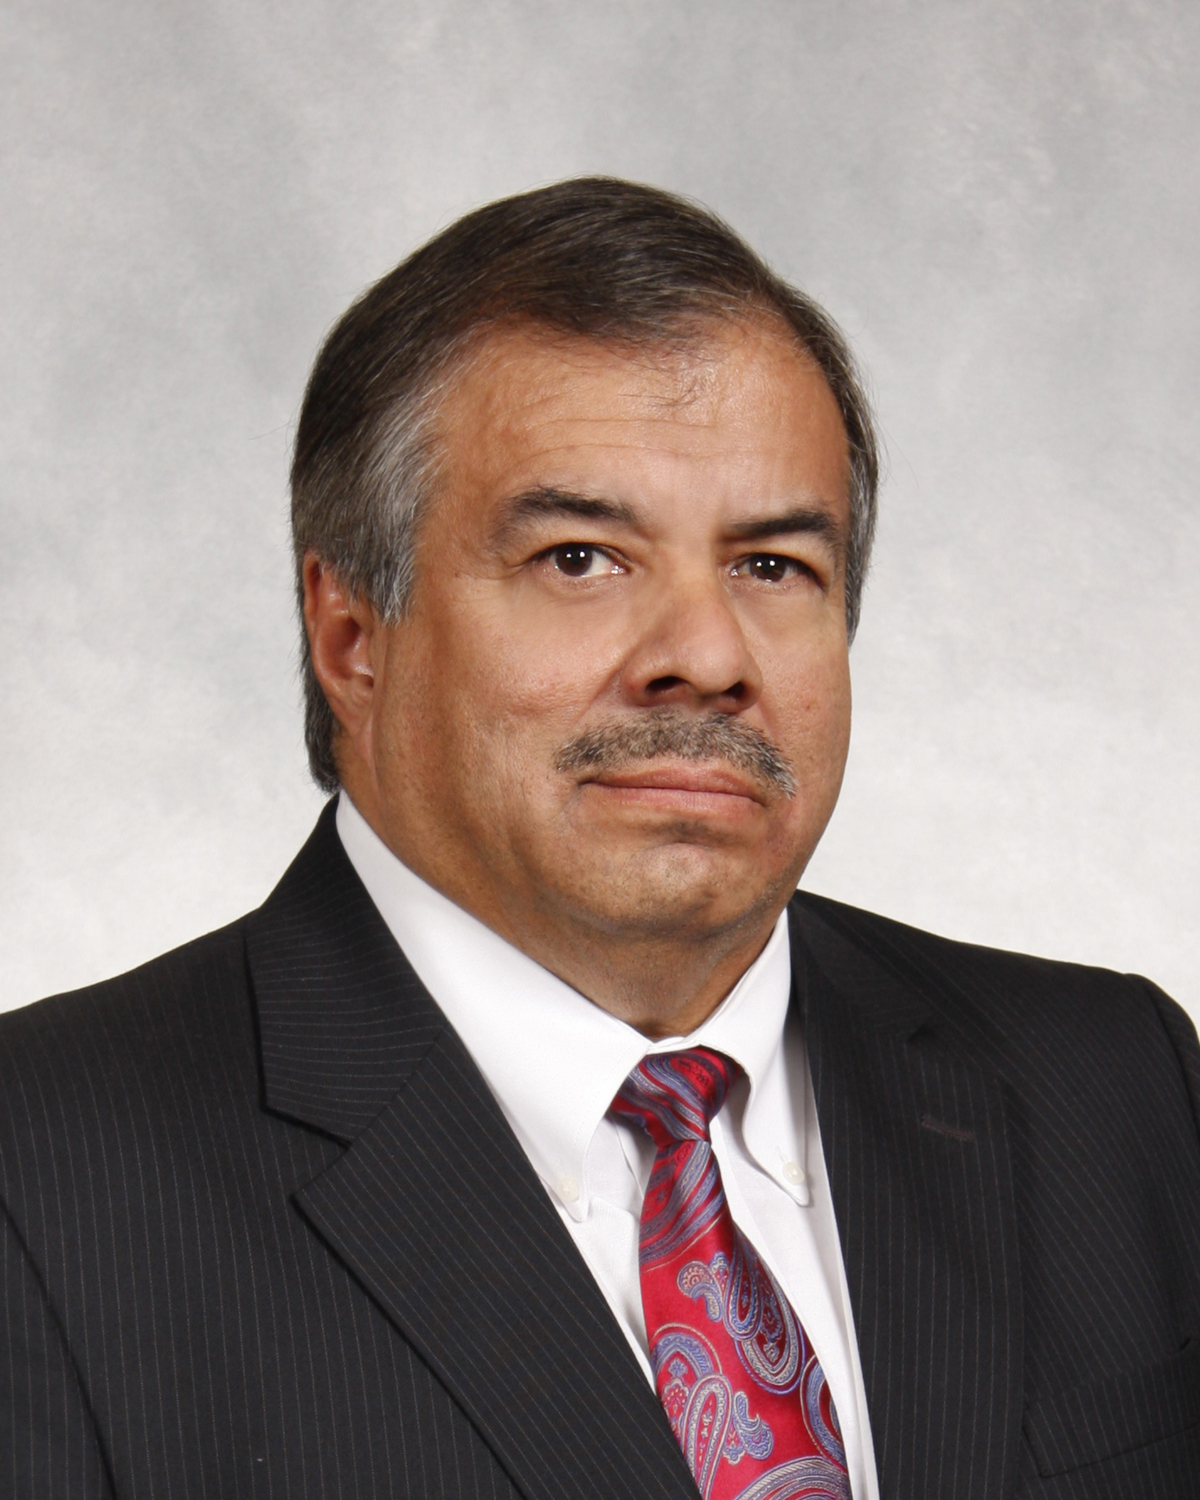 Dr. Hernandez - Superintendent of Dinuba Unified School District